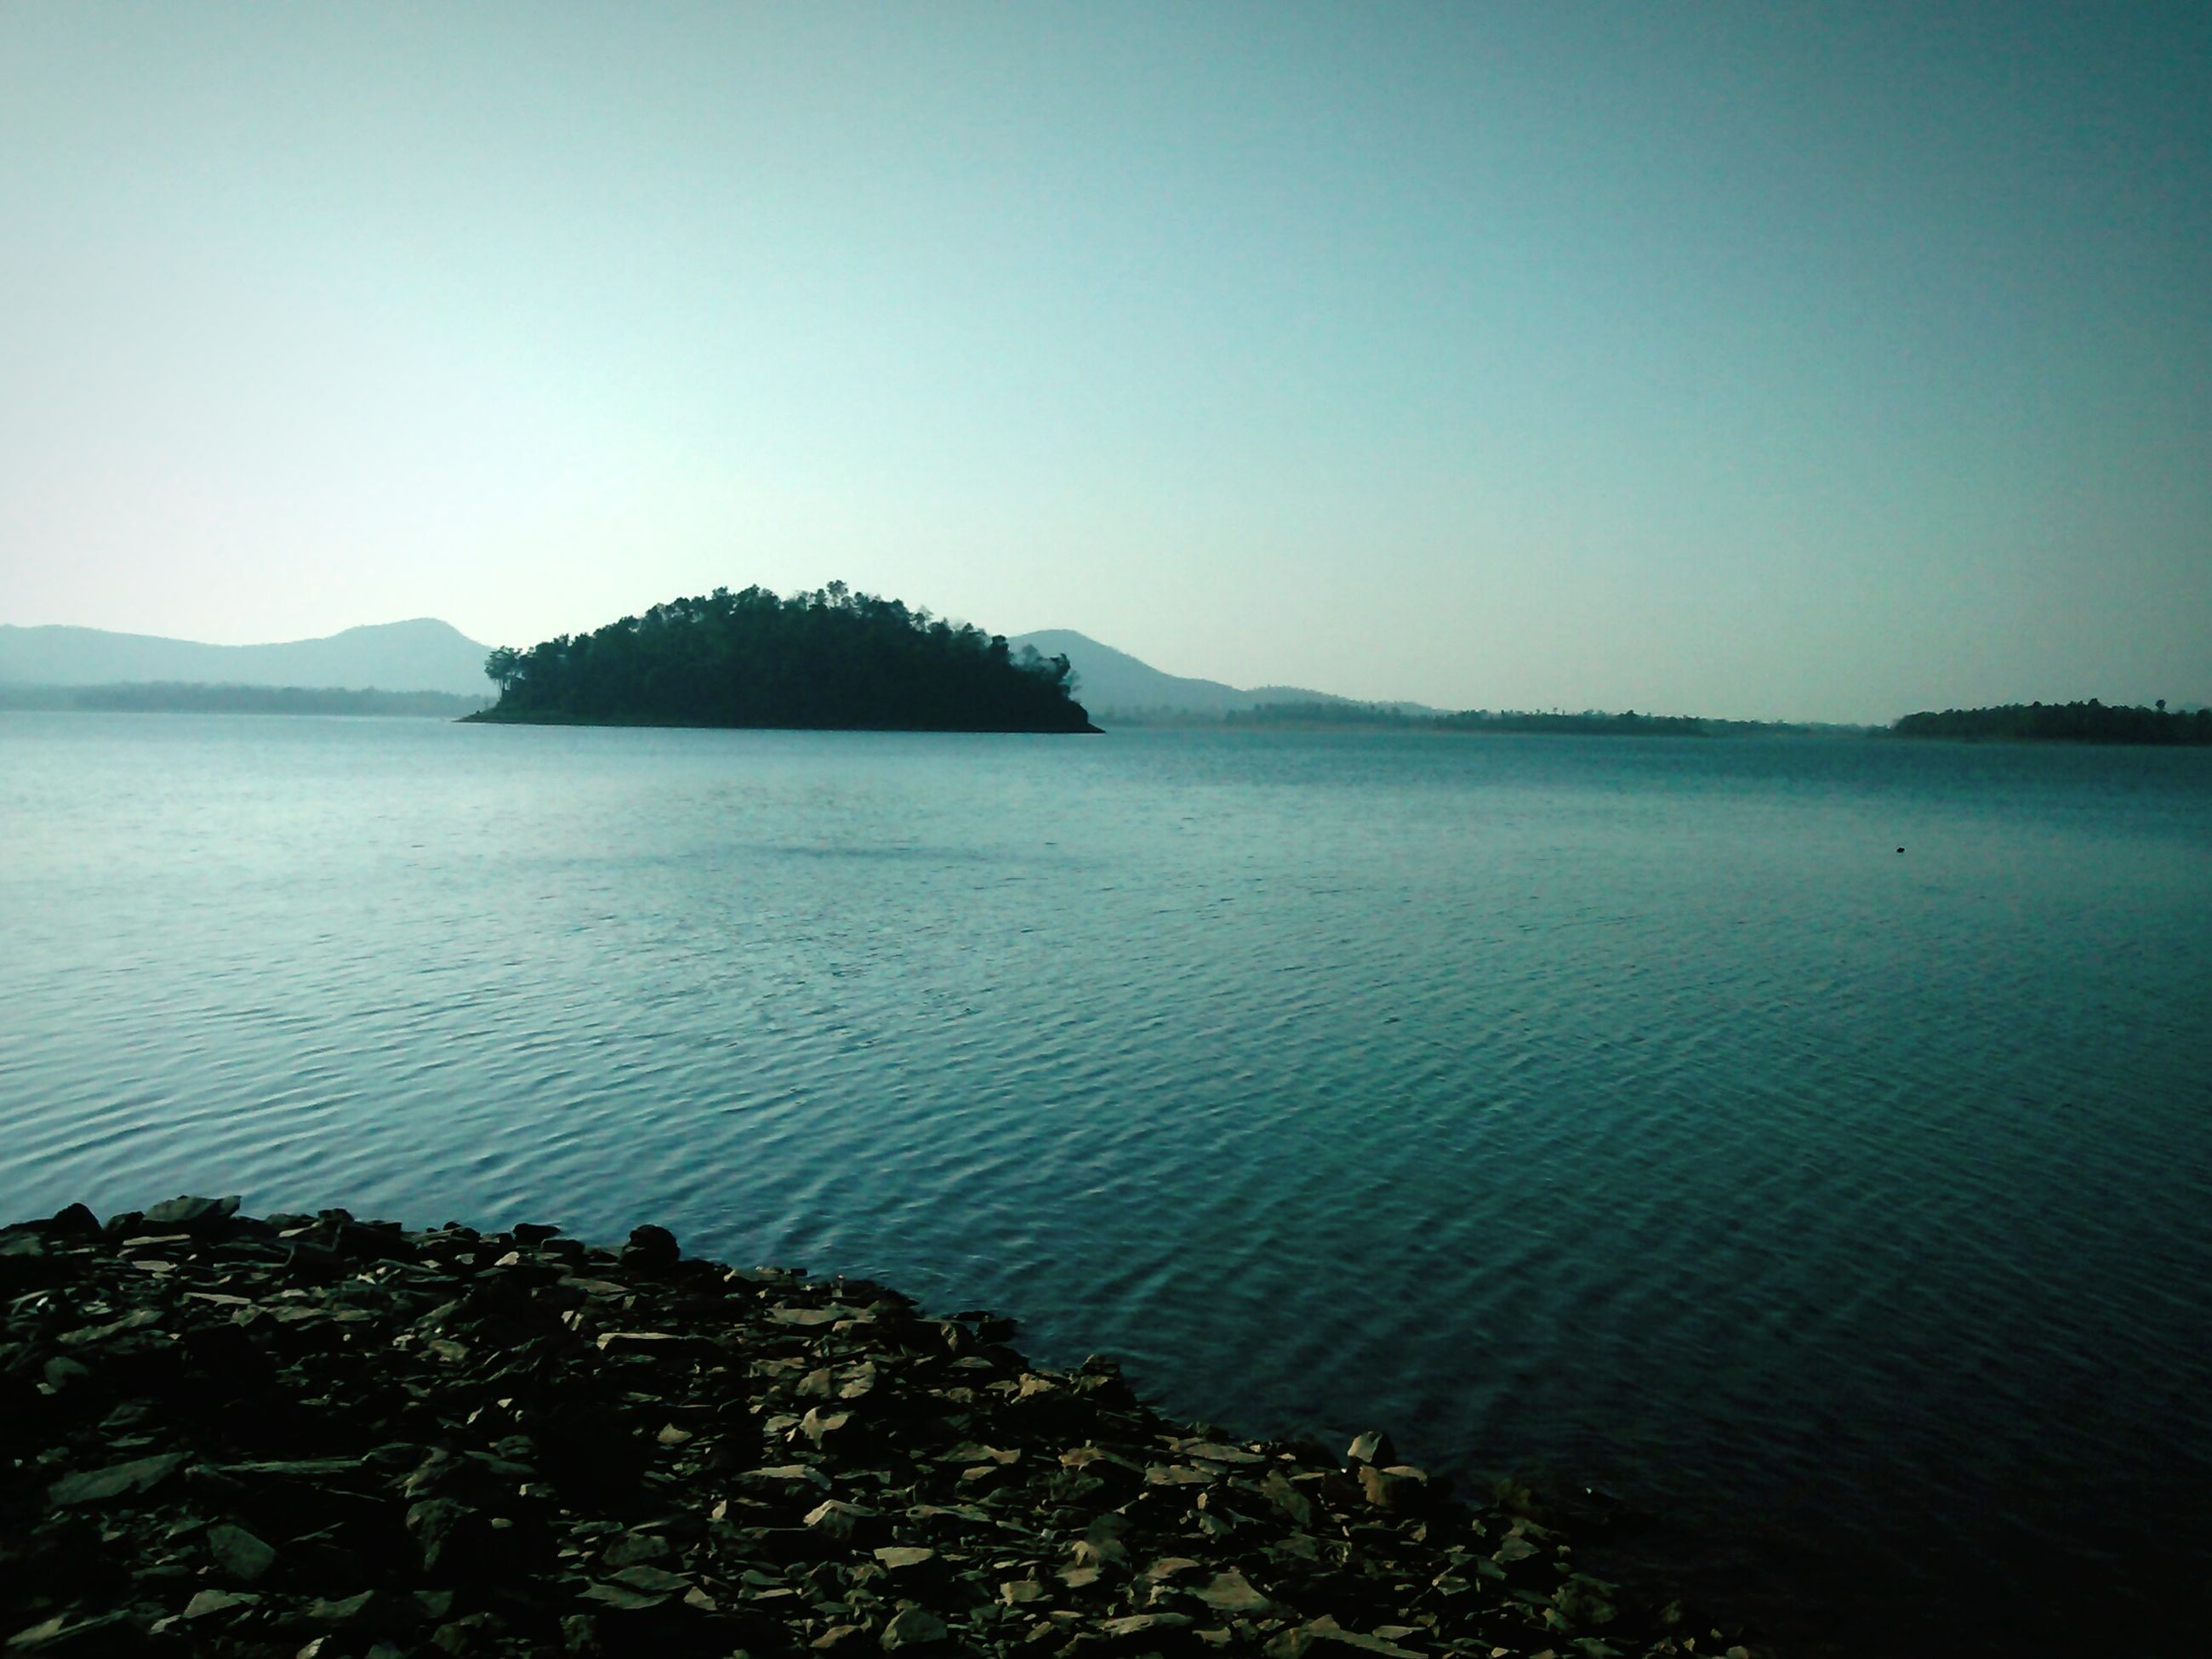 water, clear sky, tranquil scene, tranquility, scenics, beauty in nature, sea, copy space, nature, blue, mountain, idyllic, rippled, lake, coastline, non-urban scene, calm, outdoors, day, remote